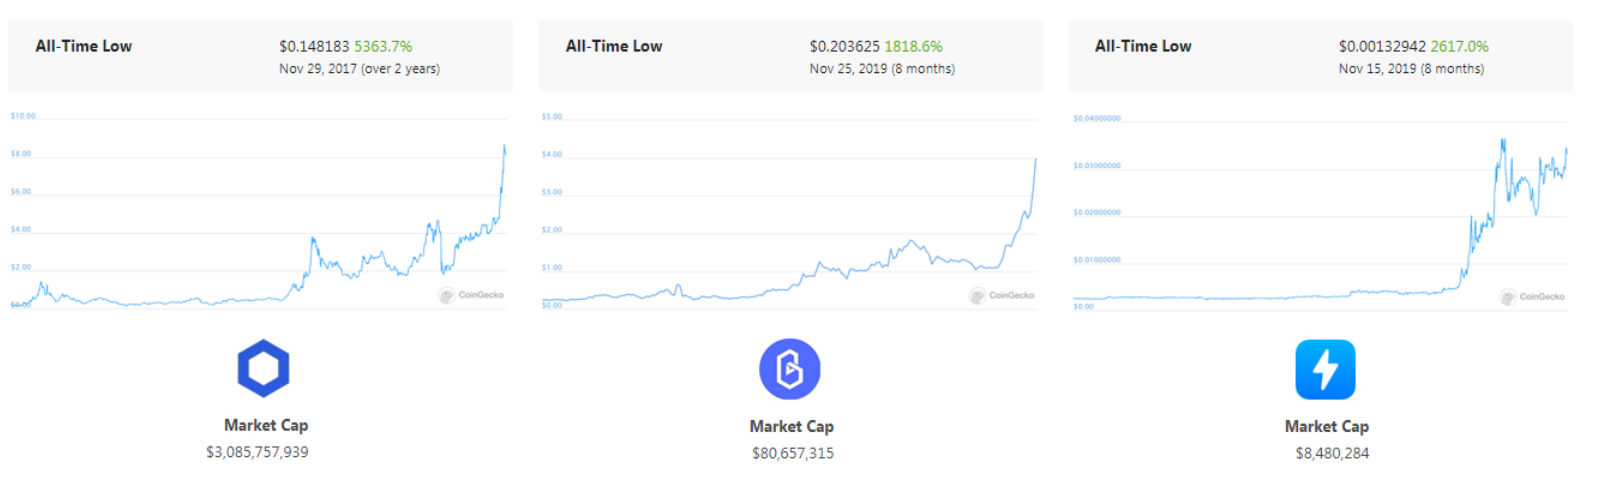 Coin coingecko trends live vs